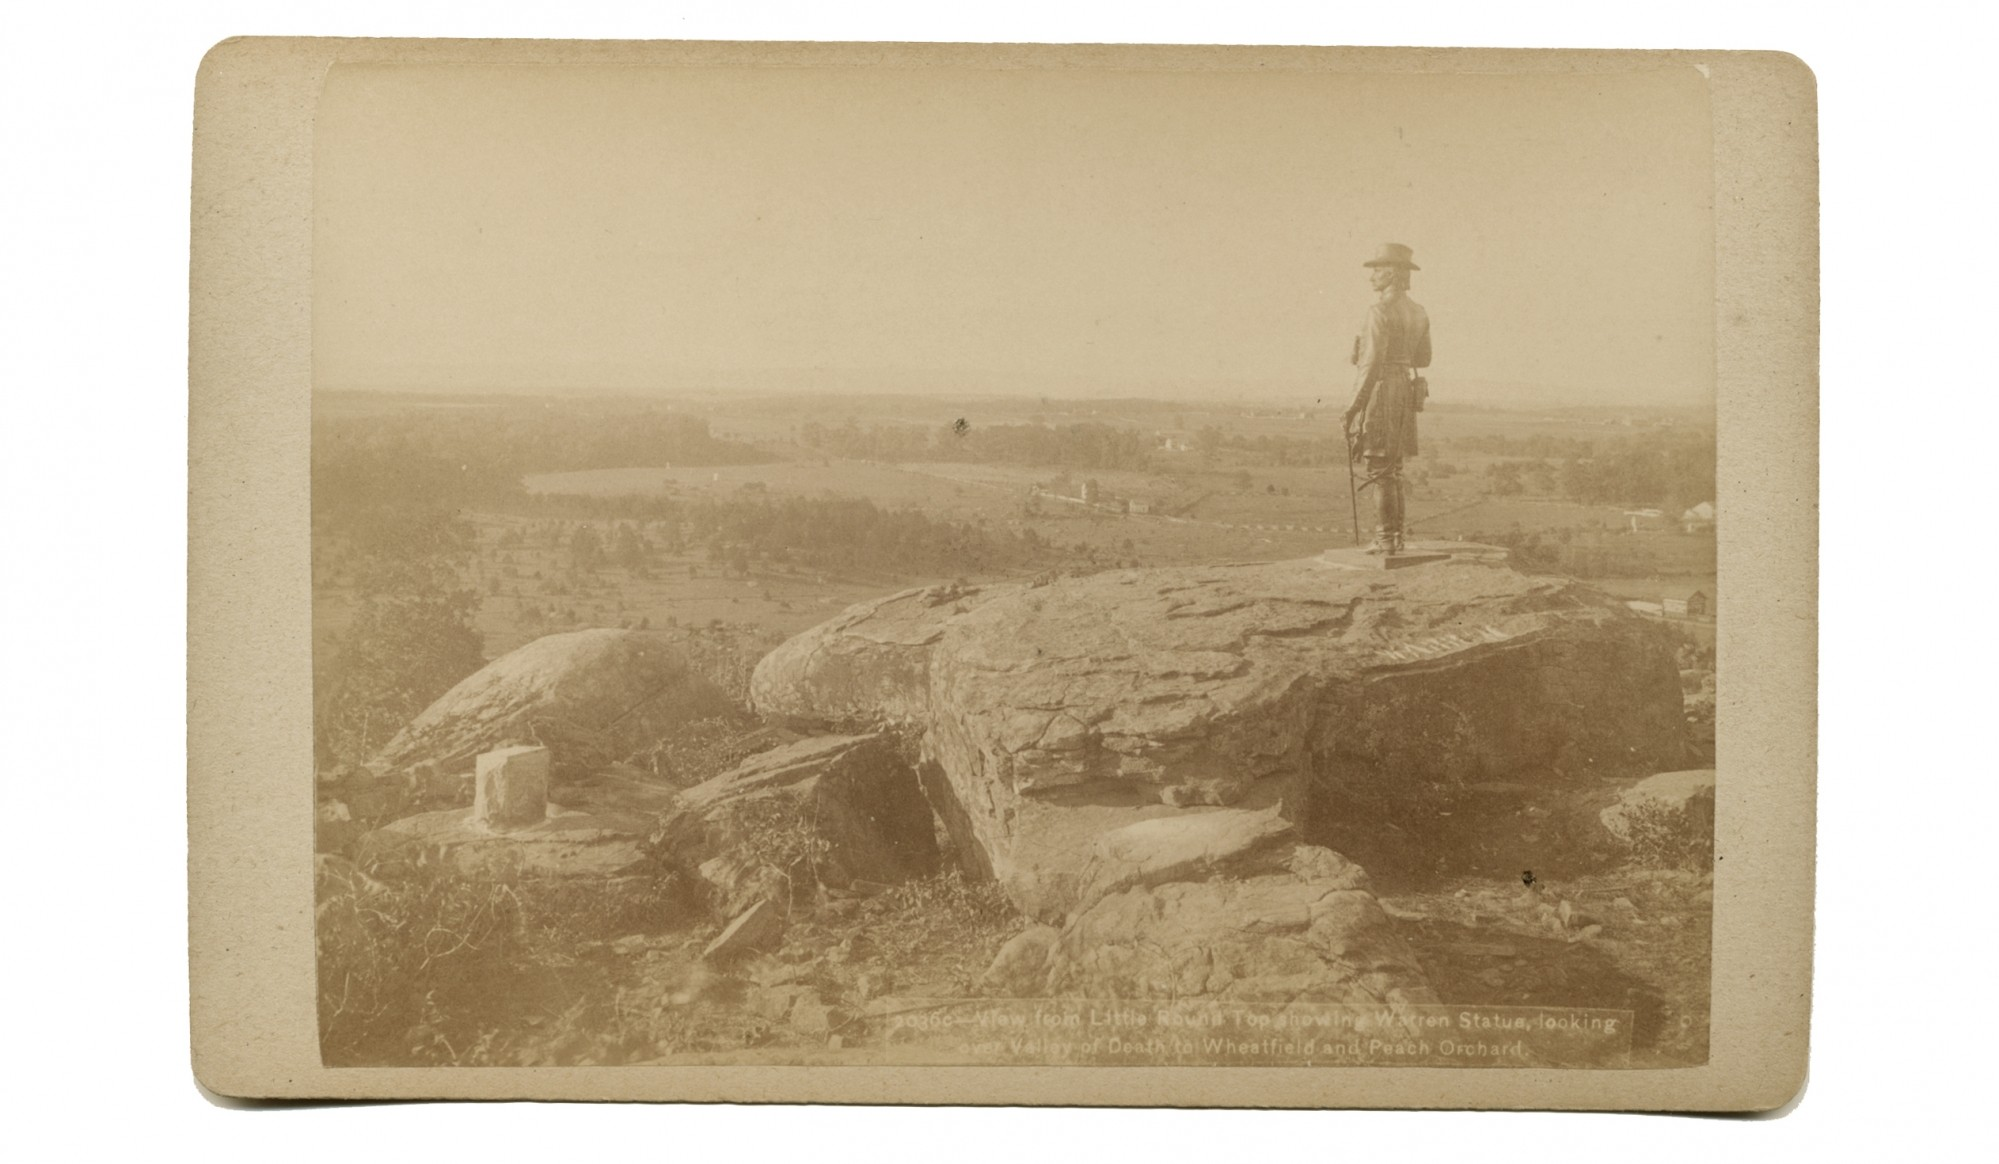 "PHOTO FROM LRT TOWARD THE WHEATFIELD AT GETTYSBURG, ""TIPTON'S CANTEEN SERIES"""